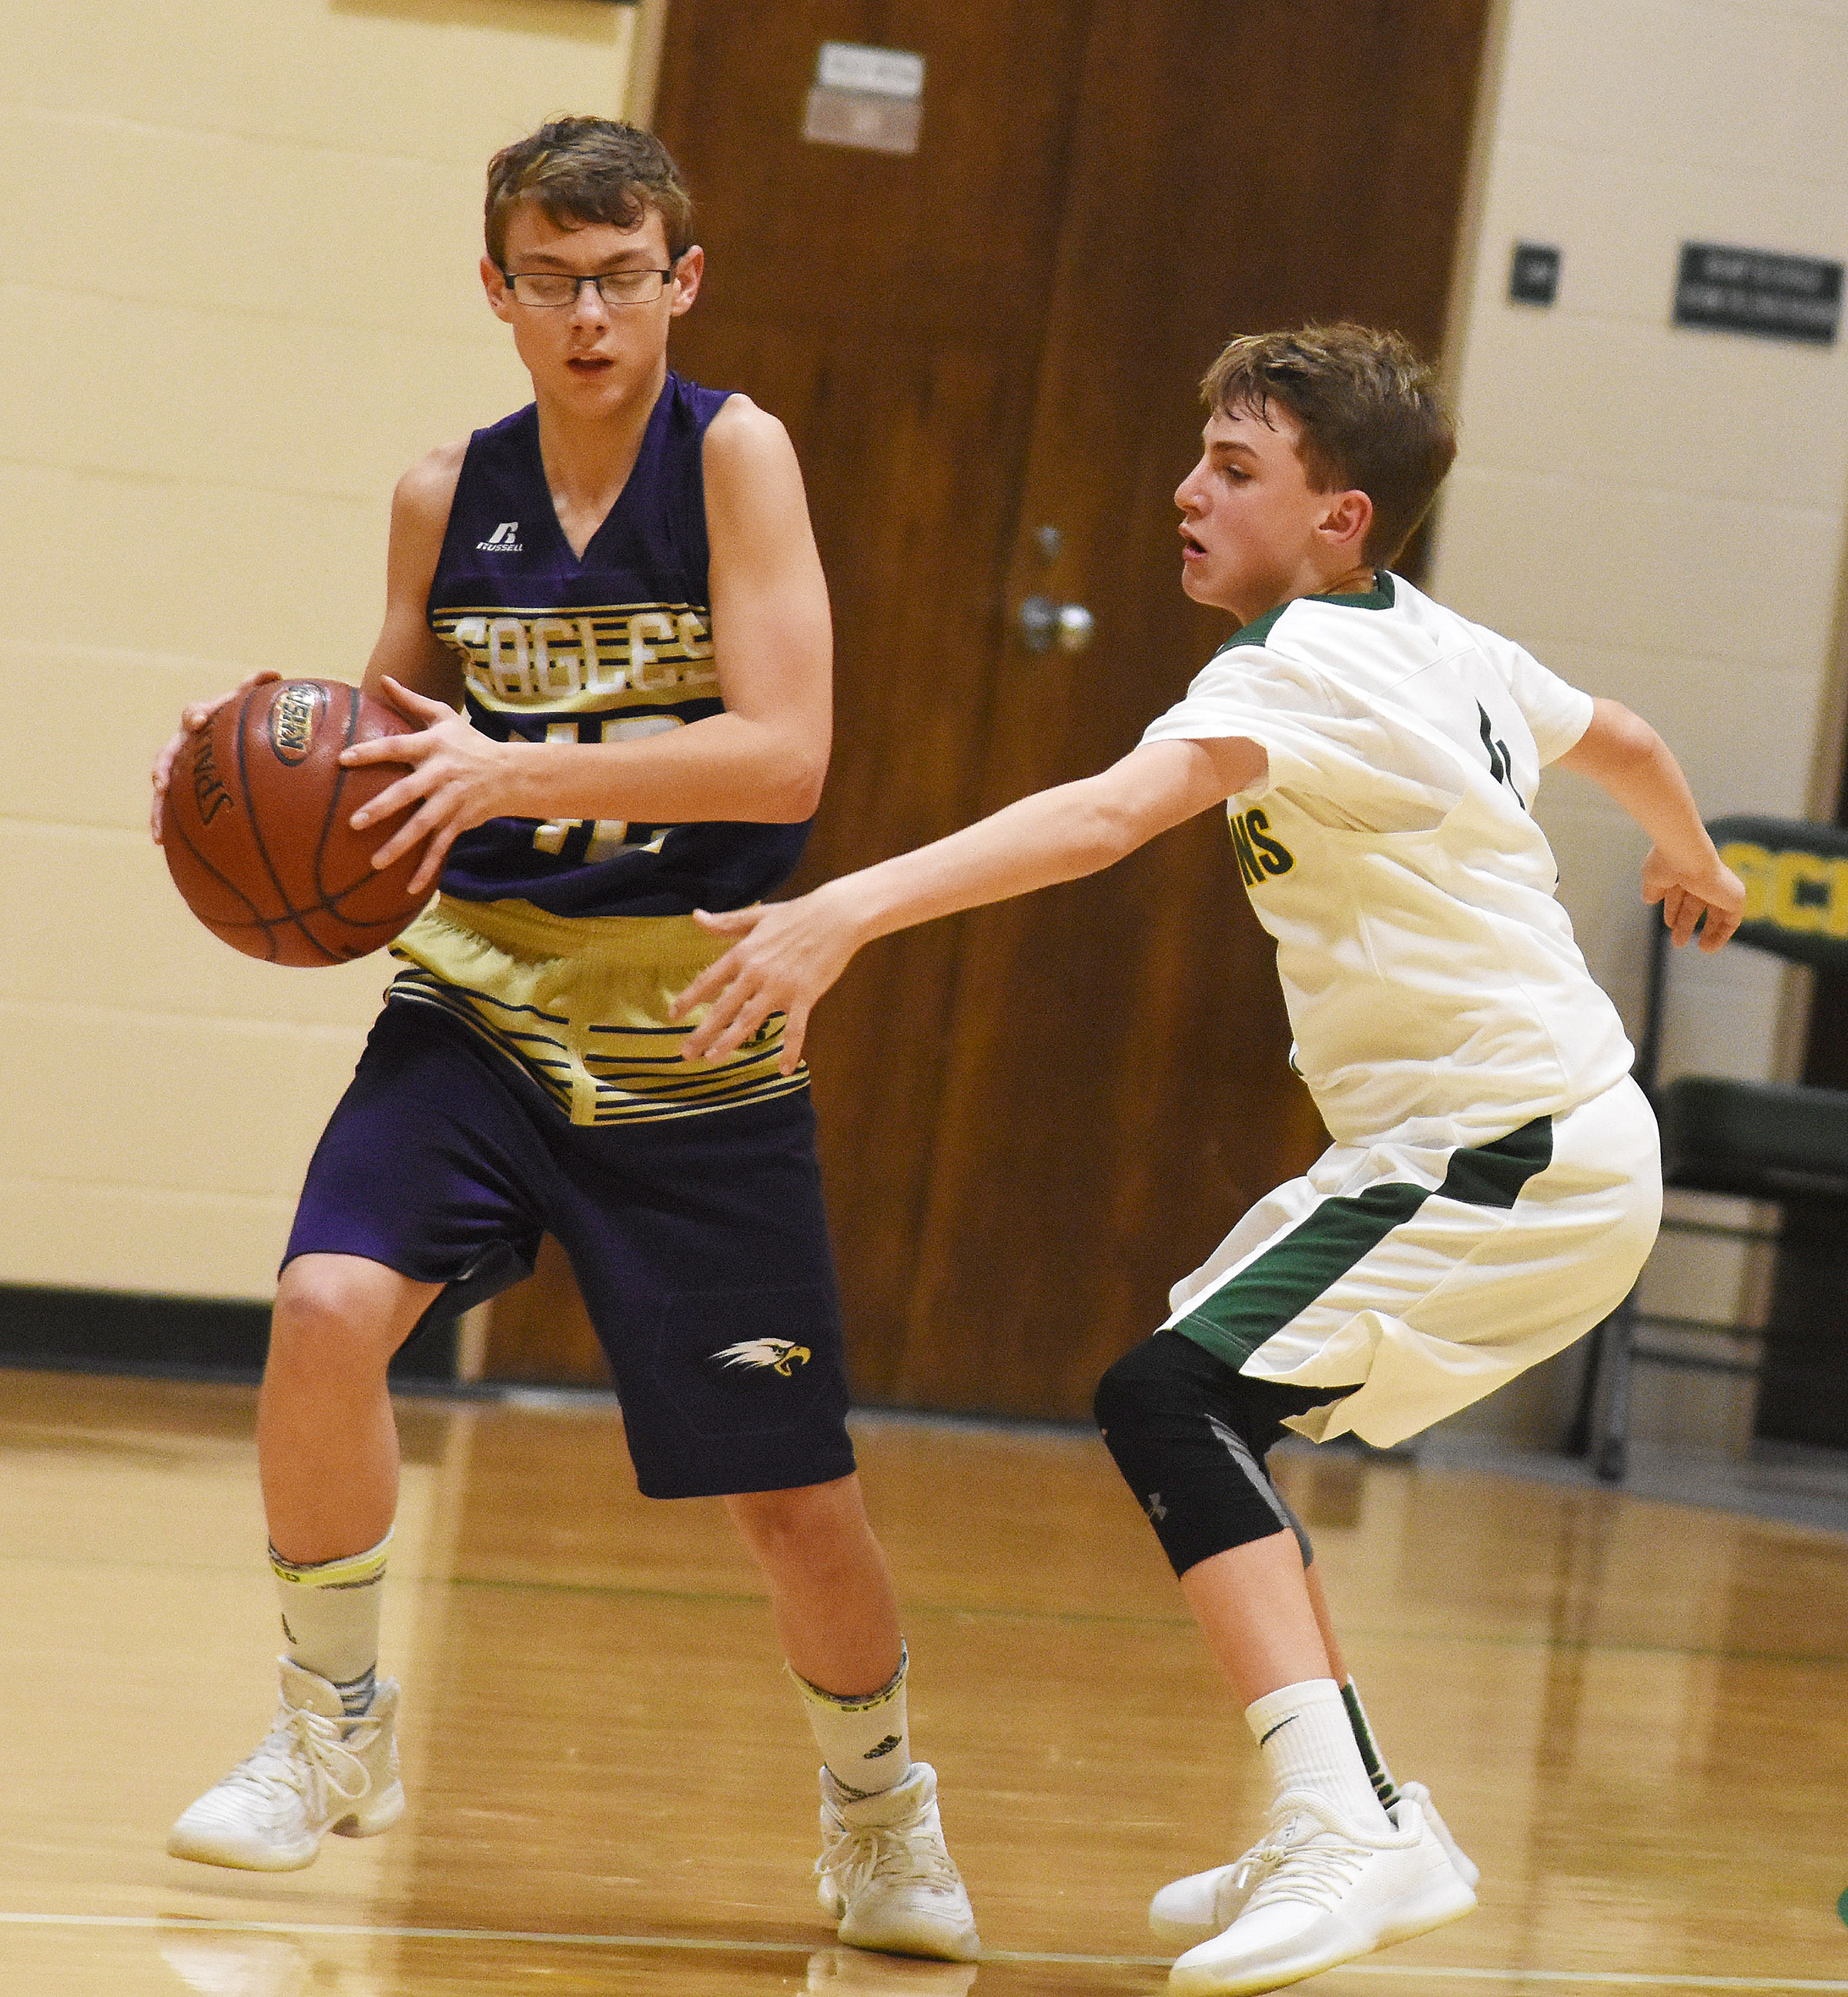 CMS eighth-grader Jarred Mays looks to pass.